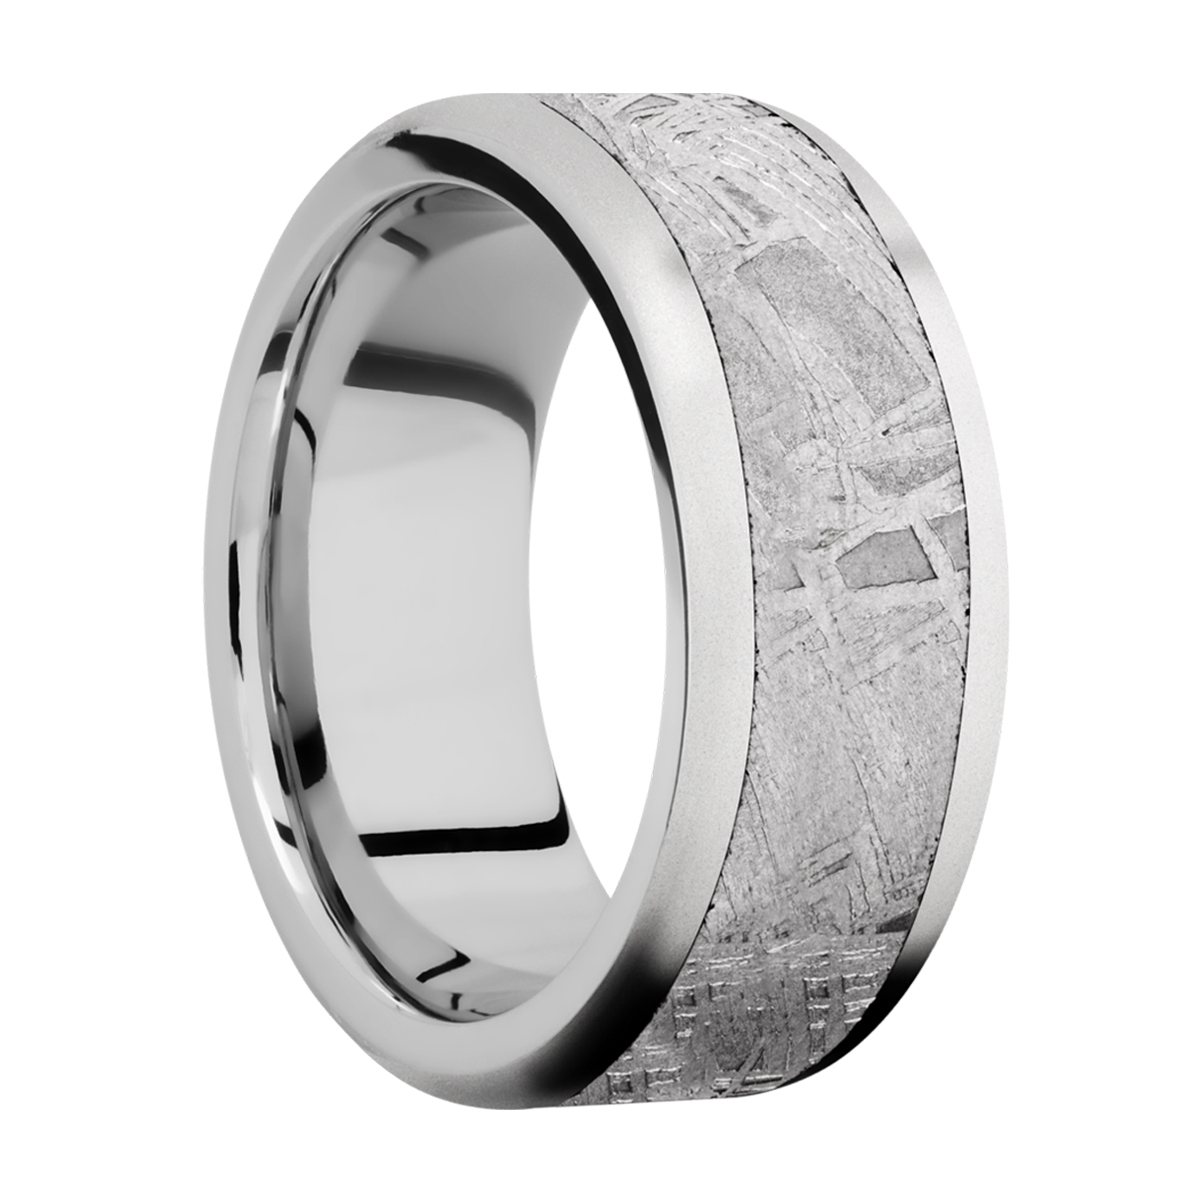 Lashbrook CC9F16/METEORITE Cobalt Chrome Wedding Ring or Band Alternative View 1